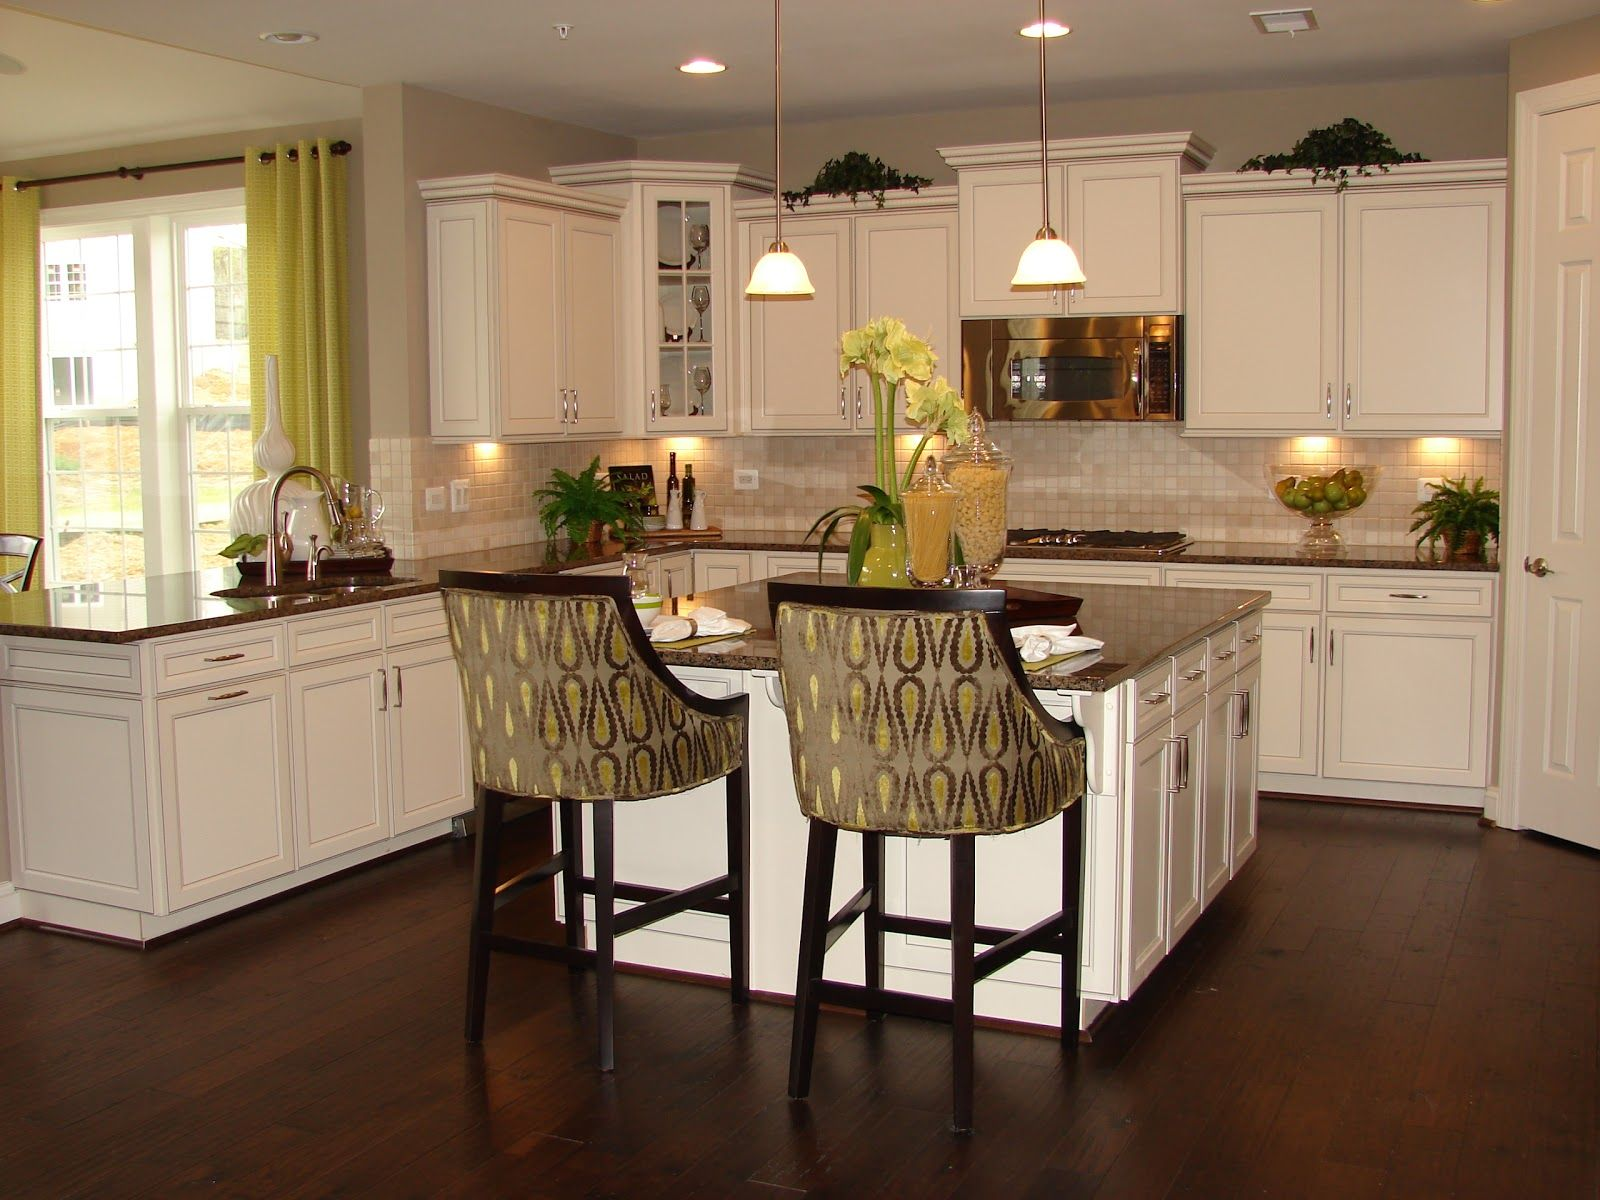 The cabinets offered by Ryan Homes Rushmore Painted Maple